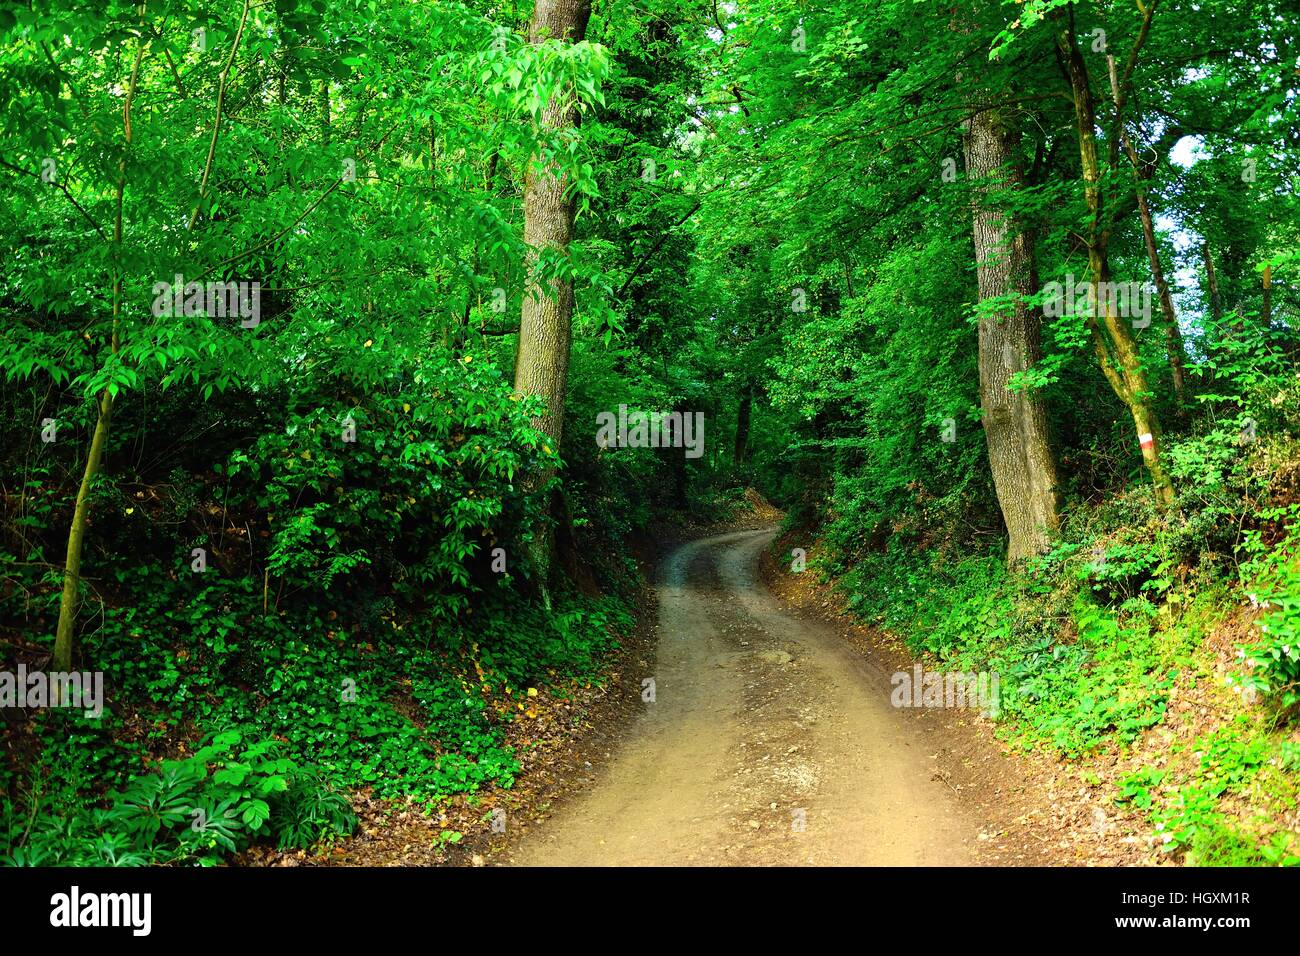 One of the ways middle of the forest surrounded by trees - Stock Image